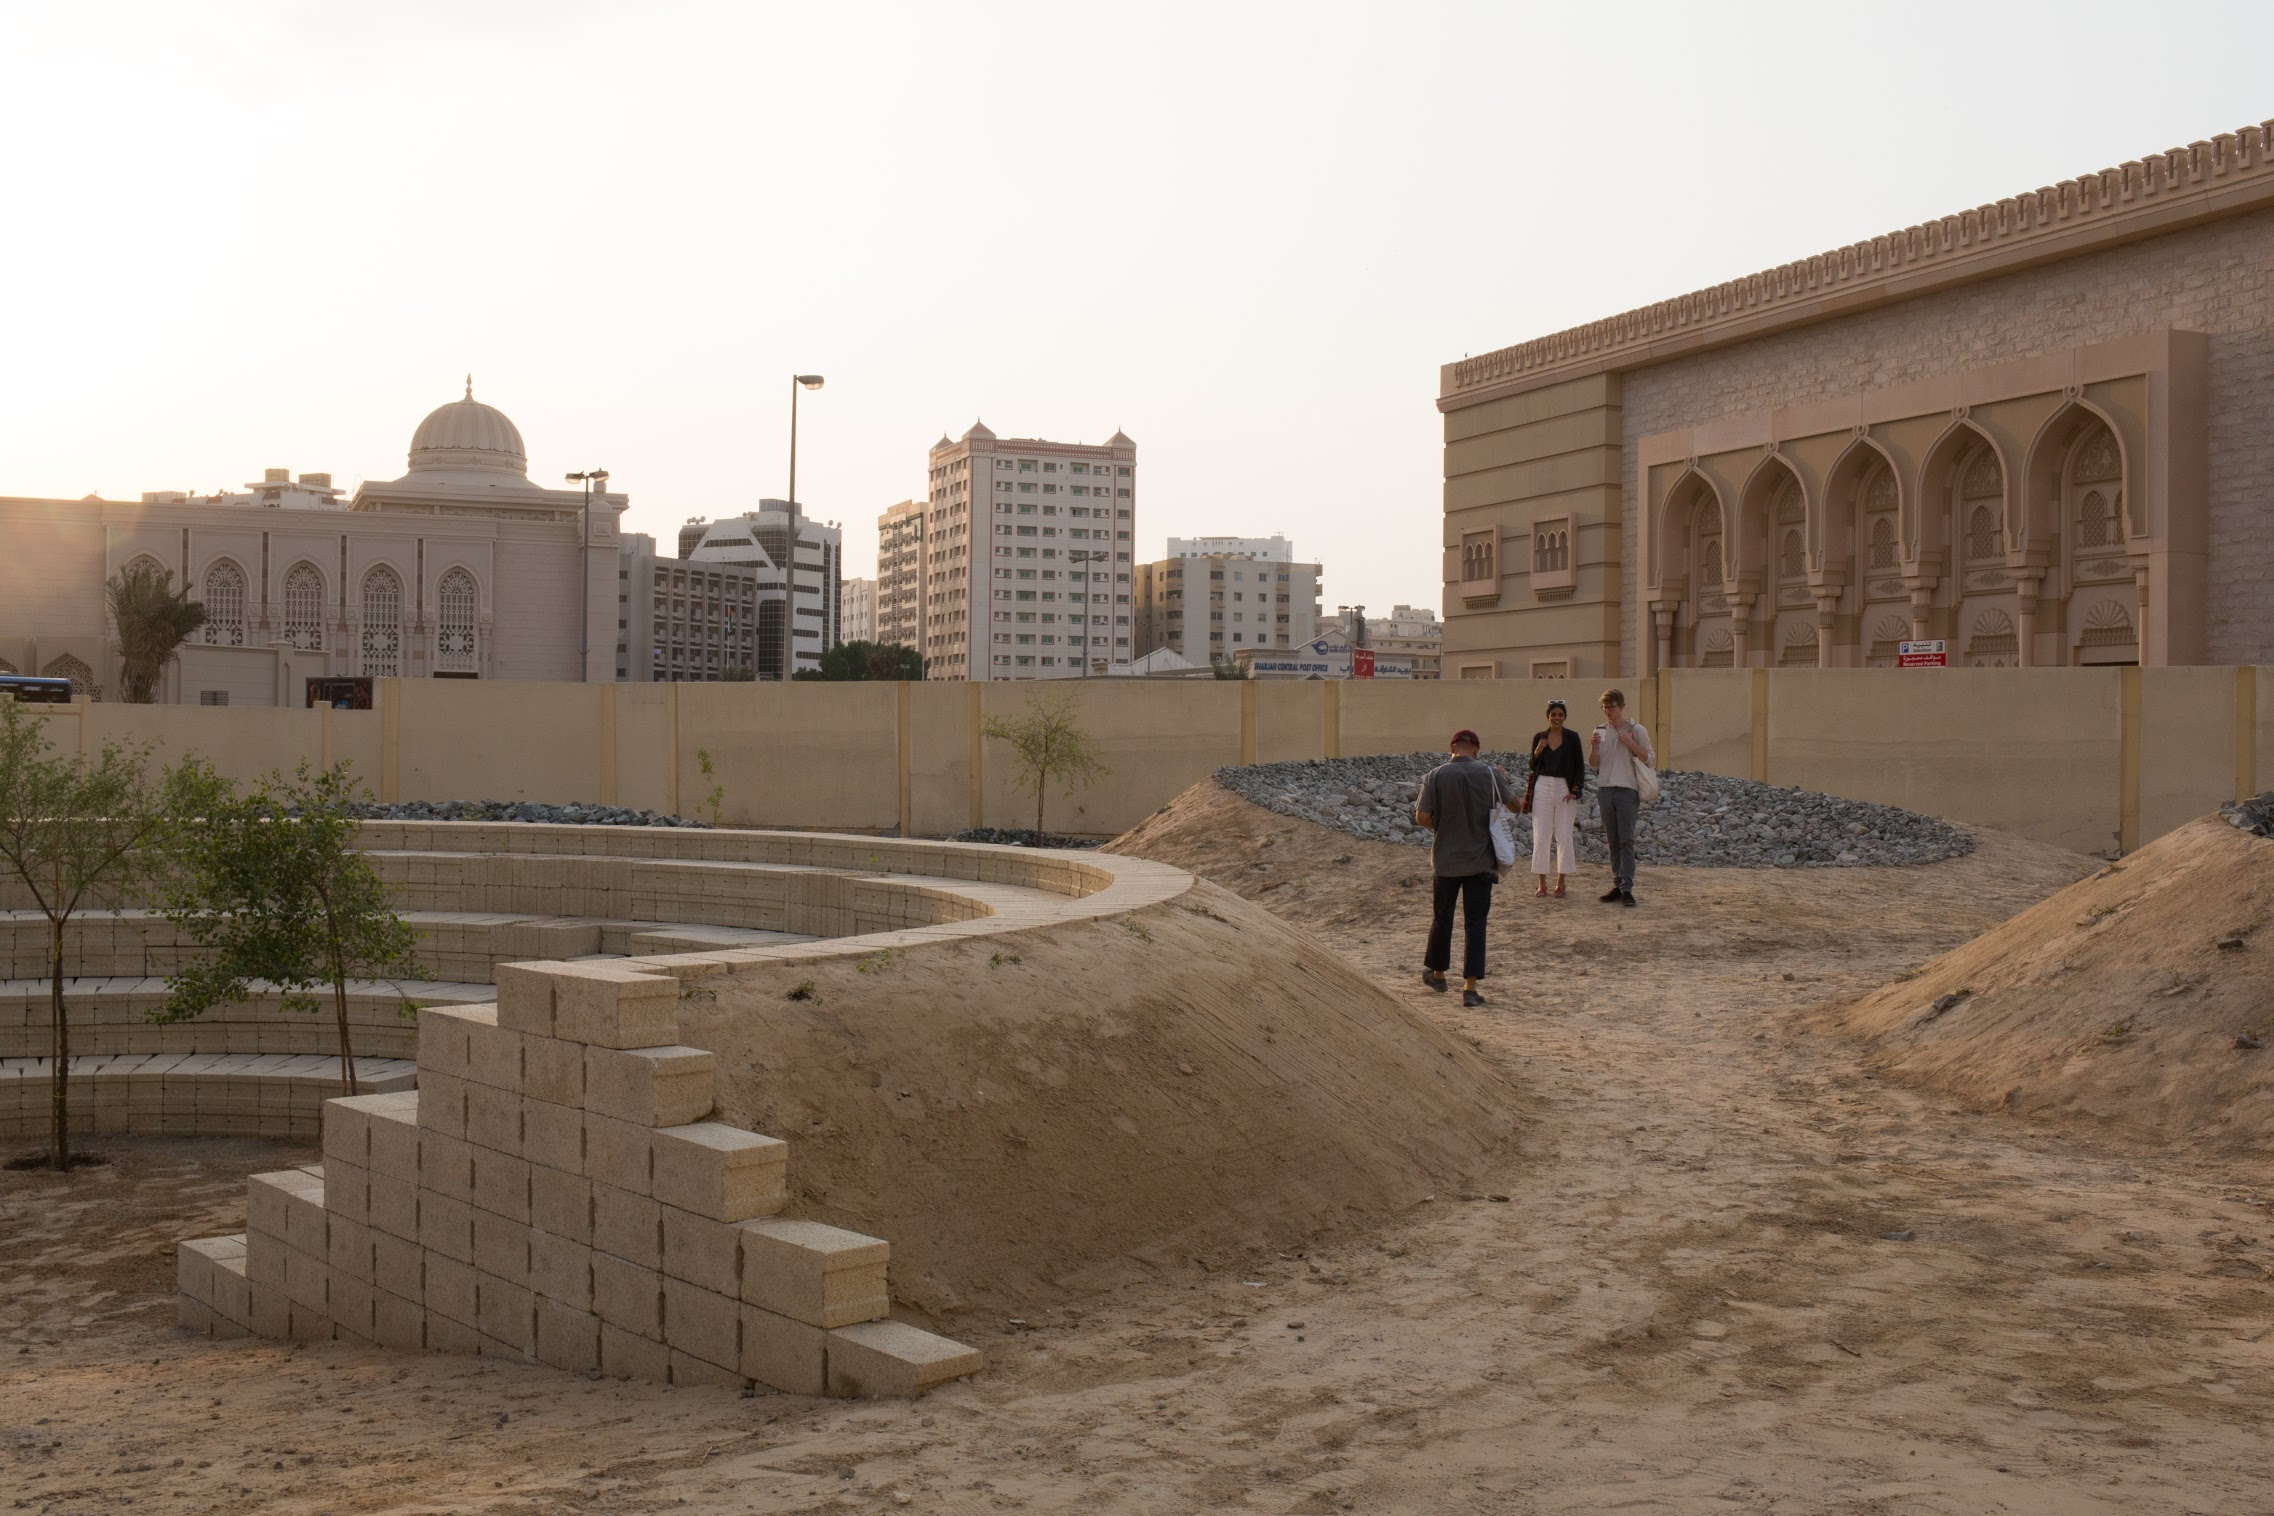 Cooking Sections, Becoming Xerophile, 2019. Installation view. Commissioned for Rights of Future Generations, inaugural edition of the Sharjah Architecture Triennial, 2019. Courtesy Antoine Espinasseau